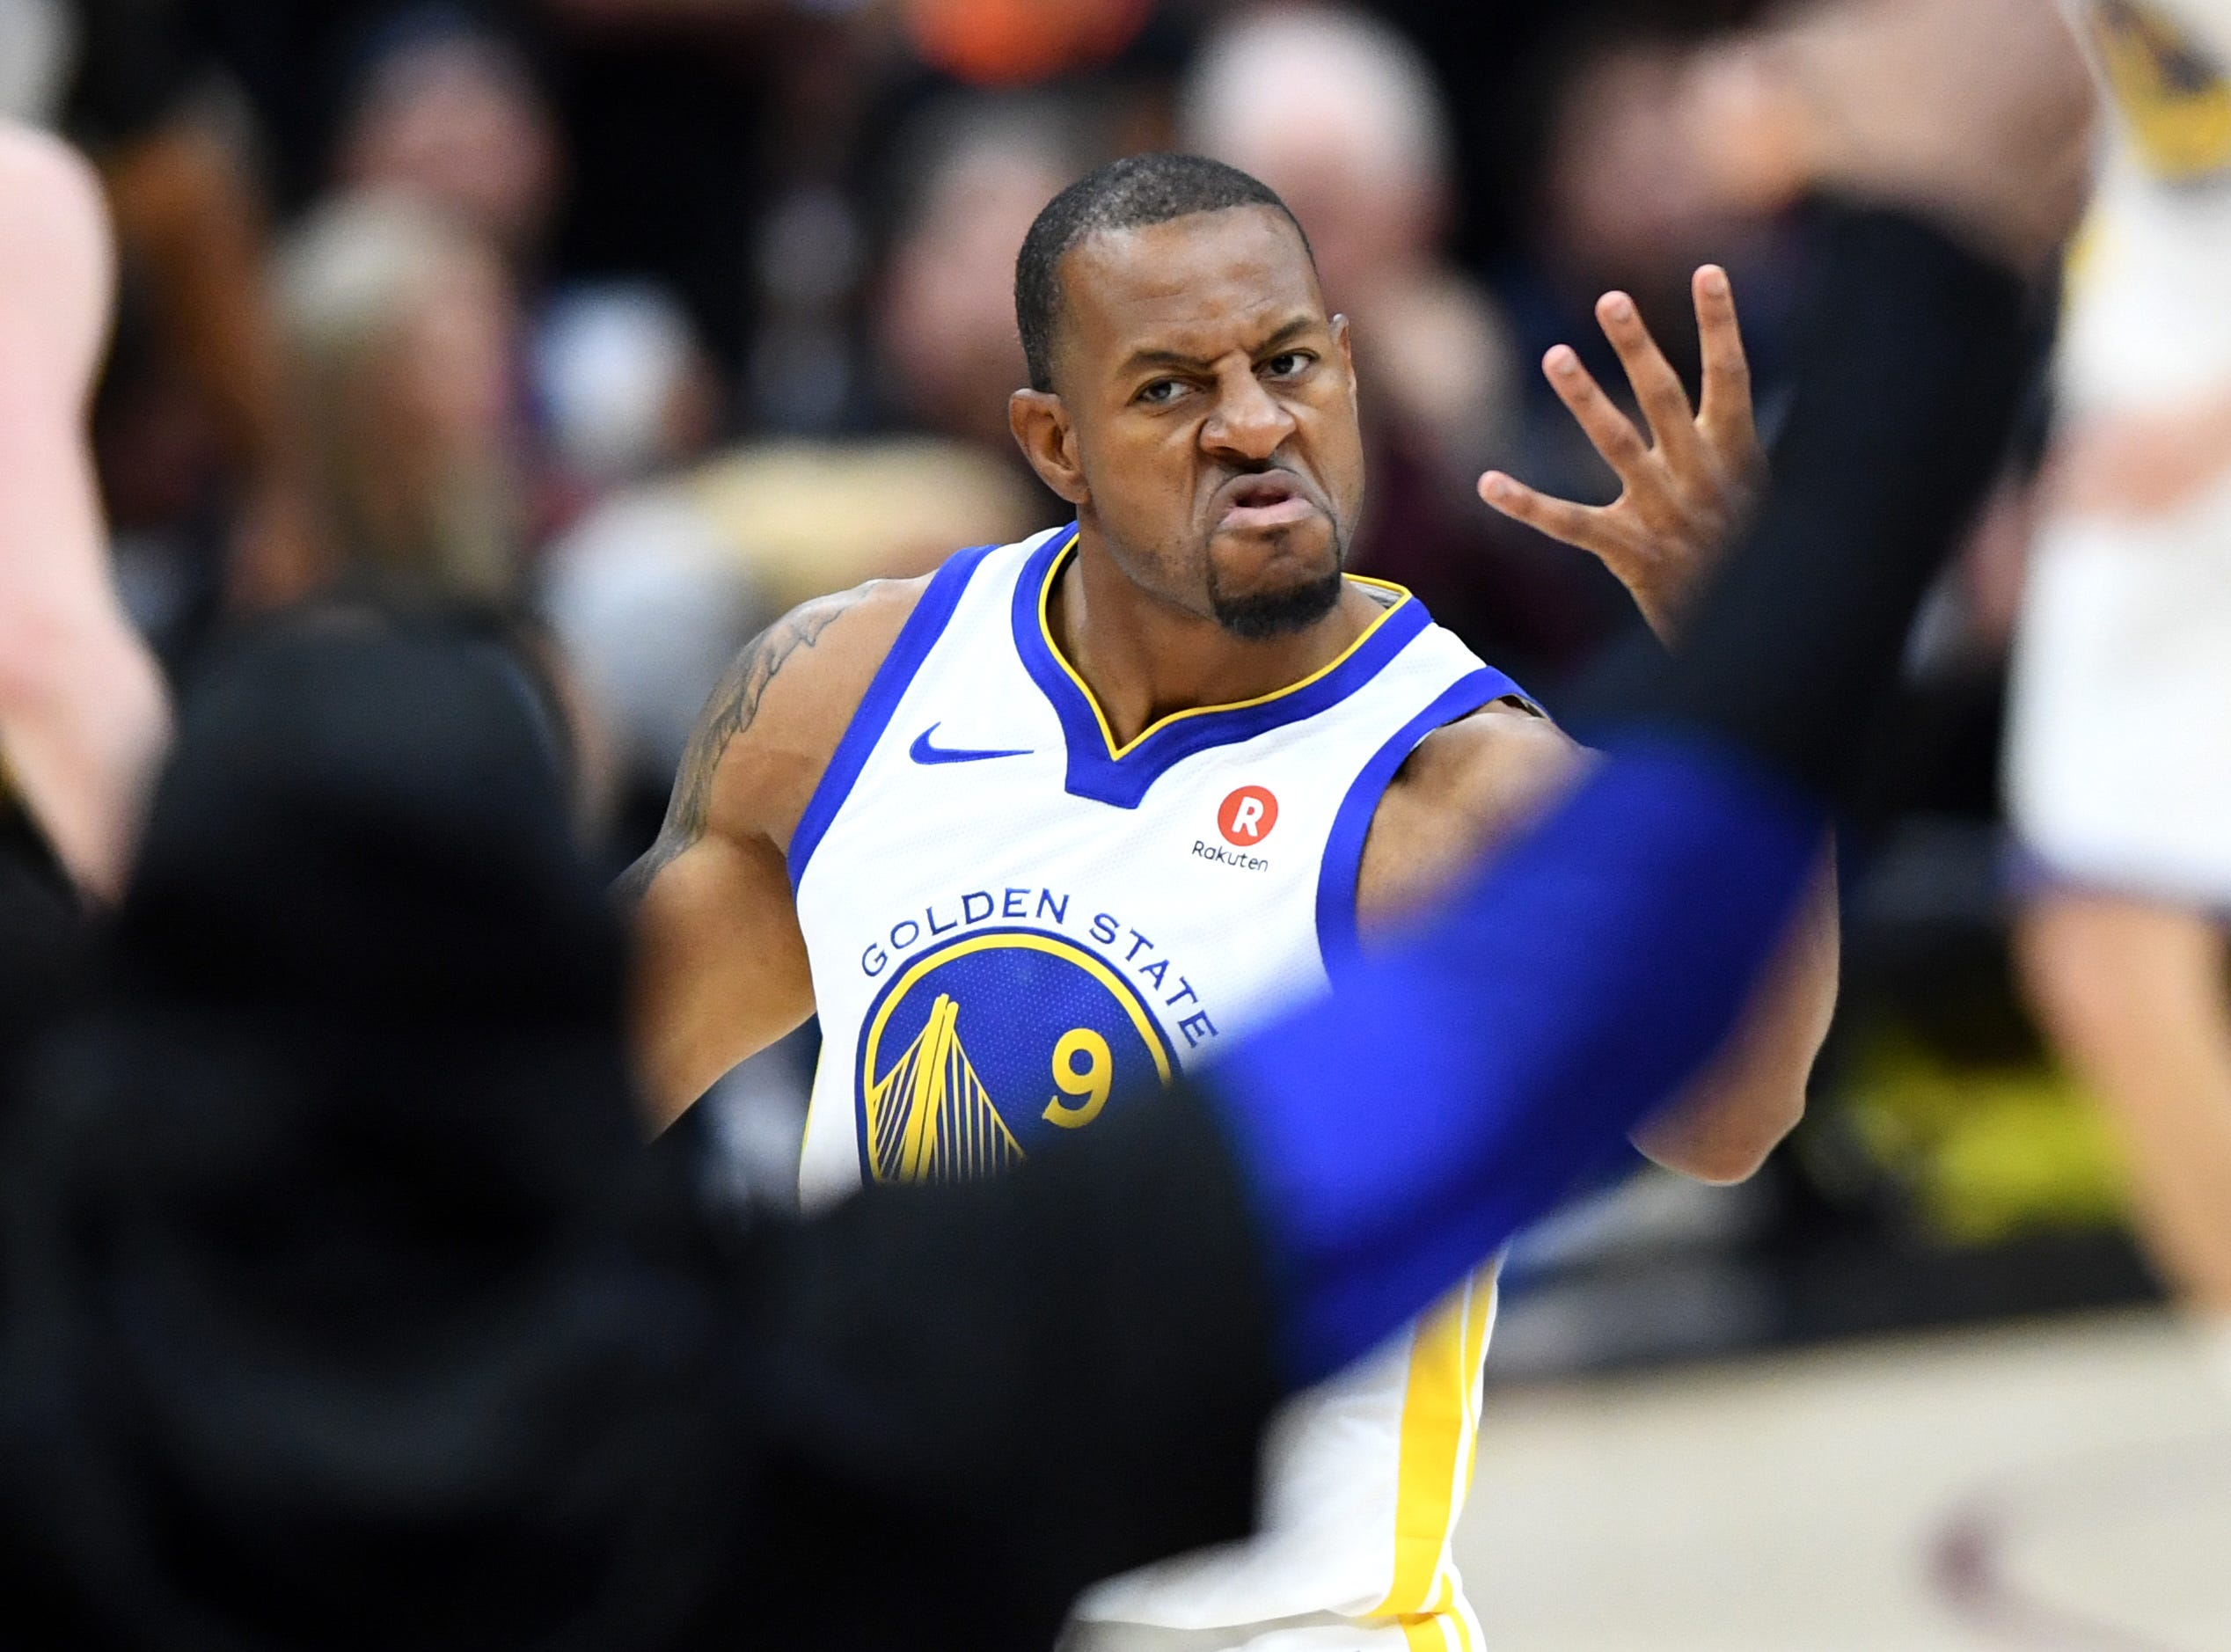 June 6: Golden State Warriors forward Andre Iguodala (9) reacts during the fourth quarter in Game 3 of the NBA Finals against the Cleveland Cavaliers.